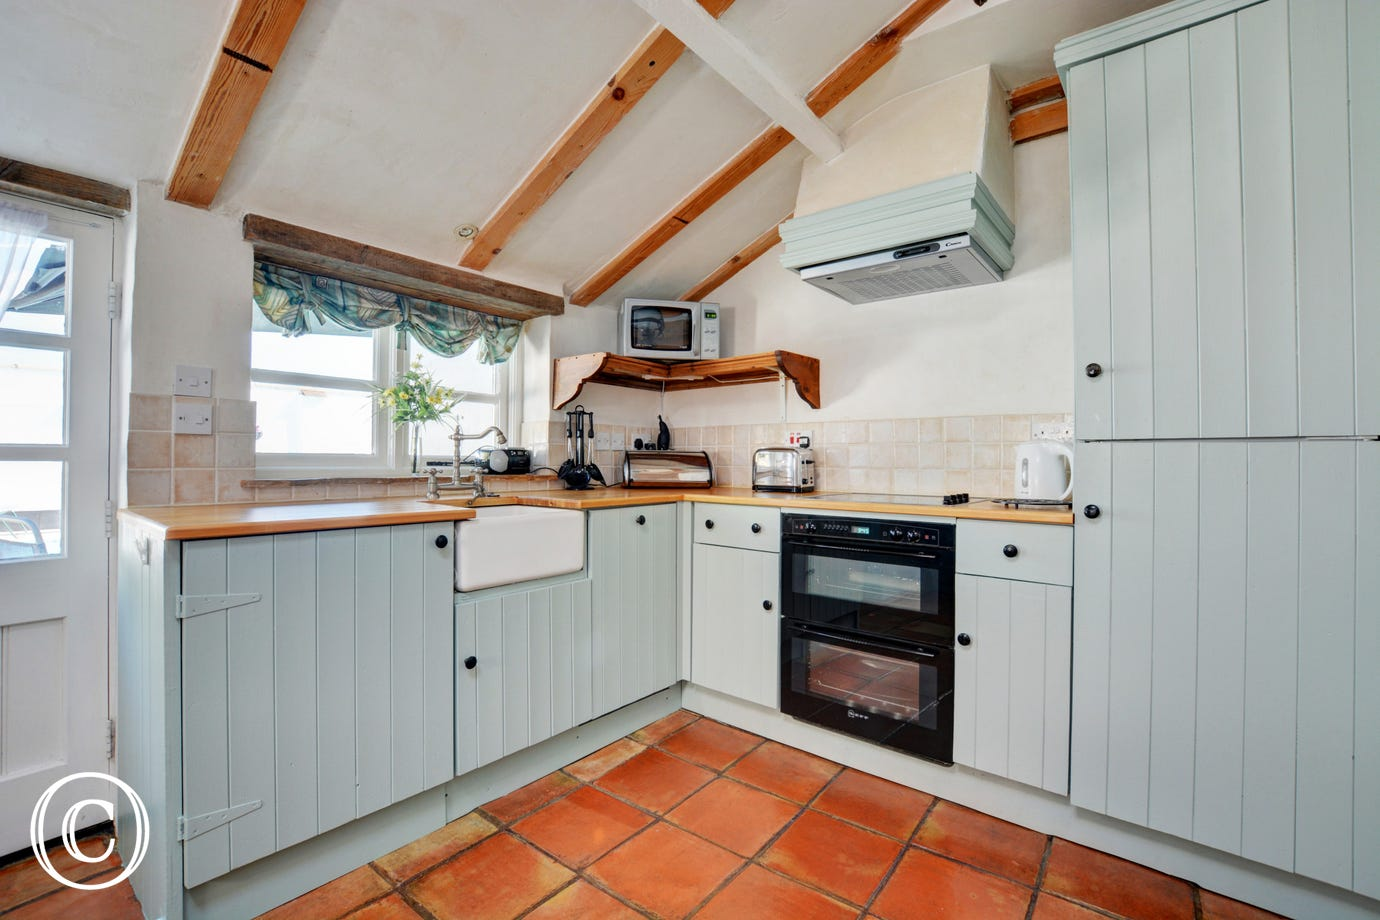 Beautiful, well equipped kitchen with ample storage and worktop space